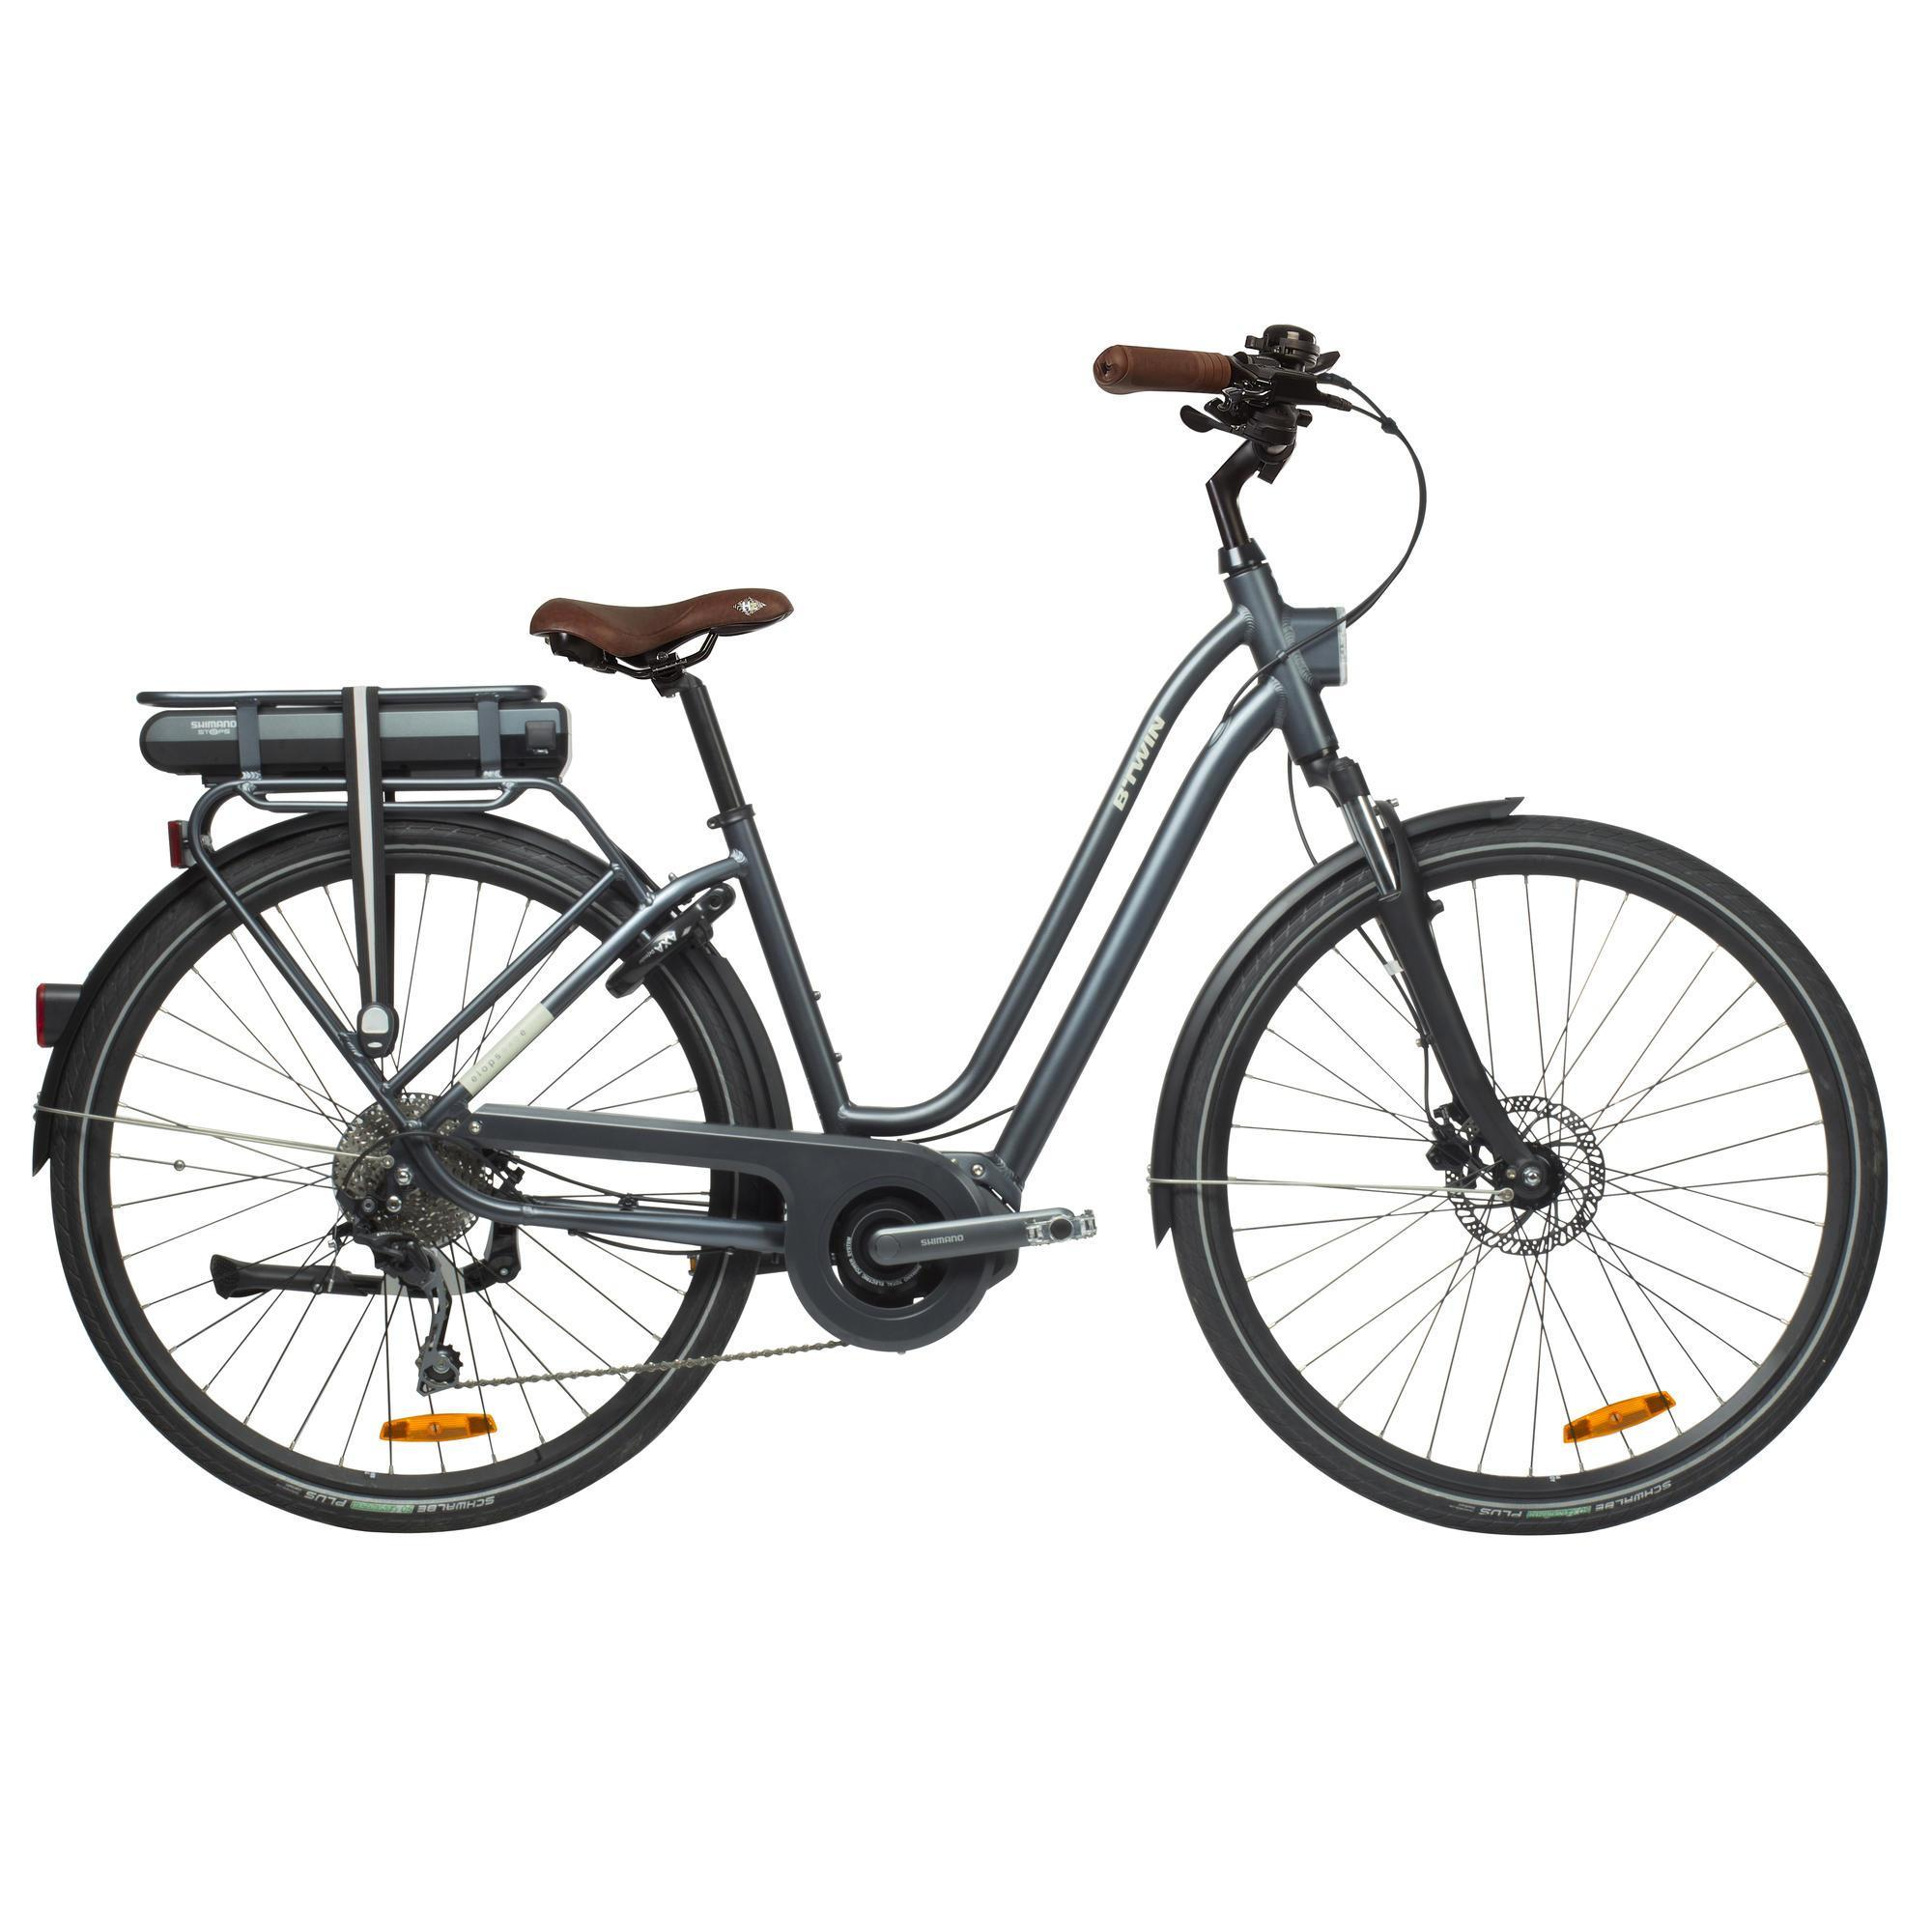 e bike elops 940 tiefer einstieg b 39 twin decathlon. Black Bedroom Furniture Sets. Home Design Ideas